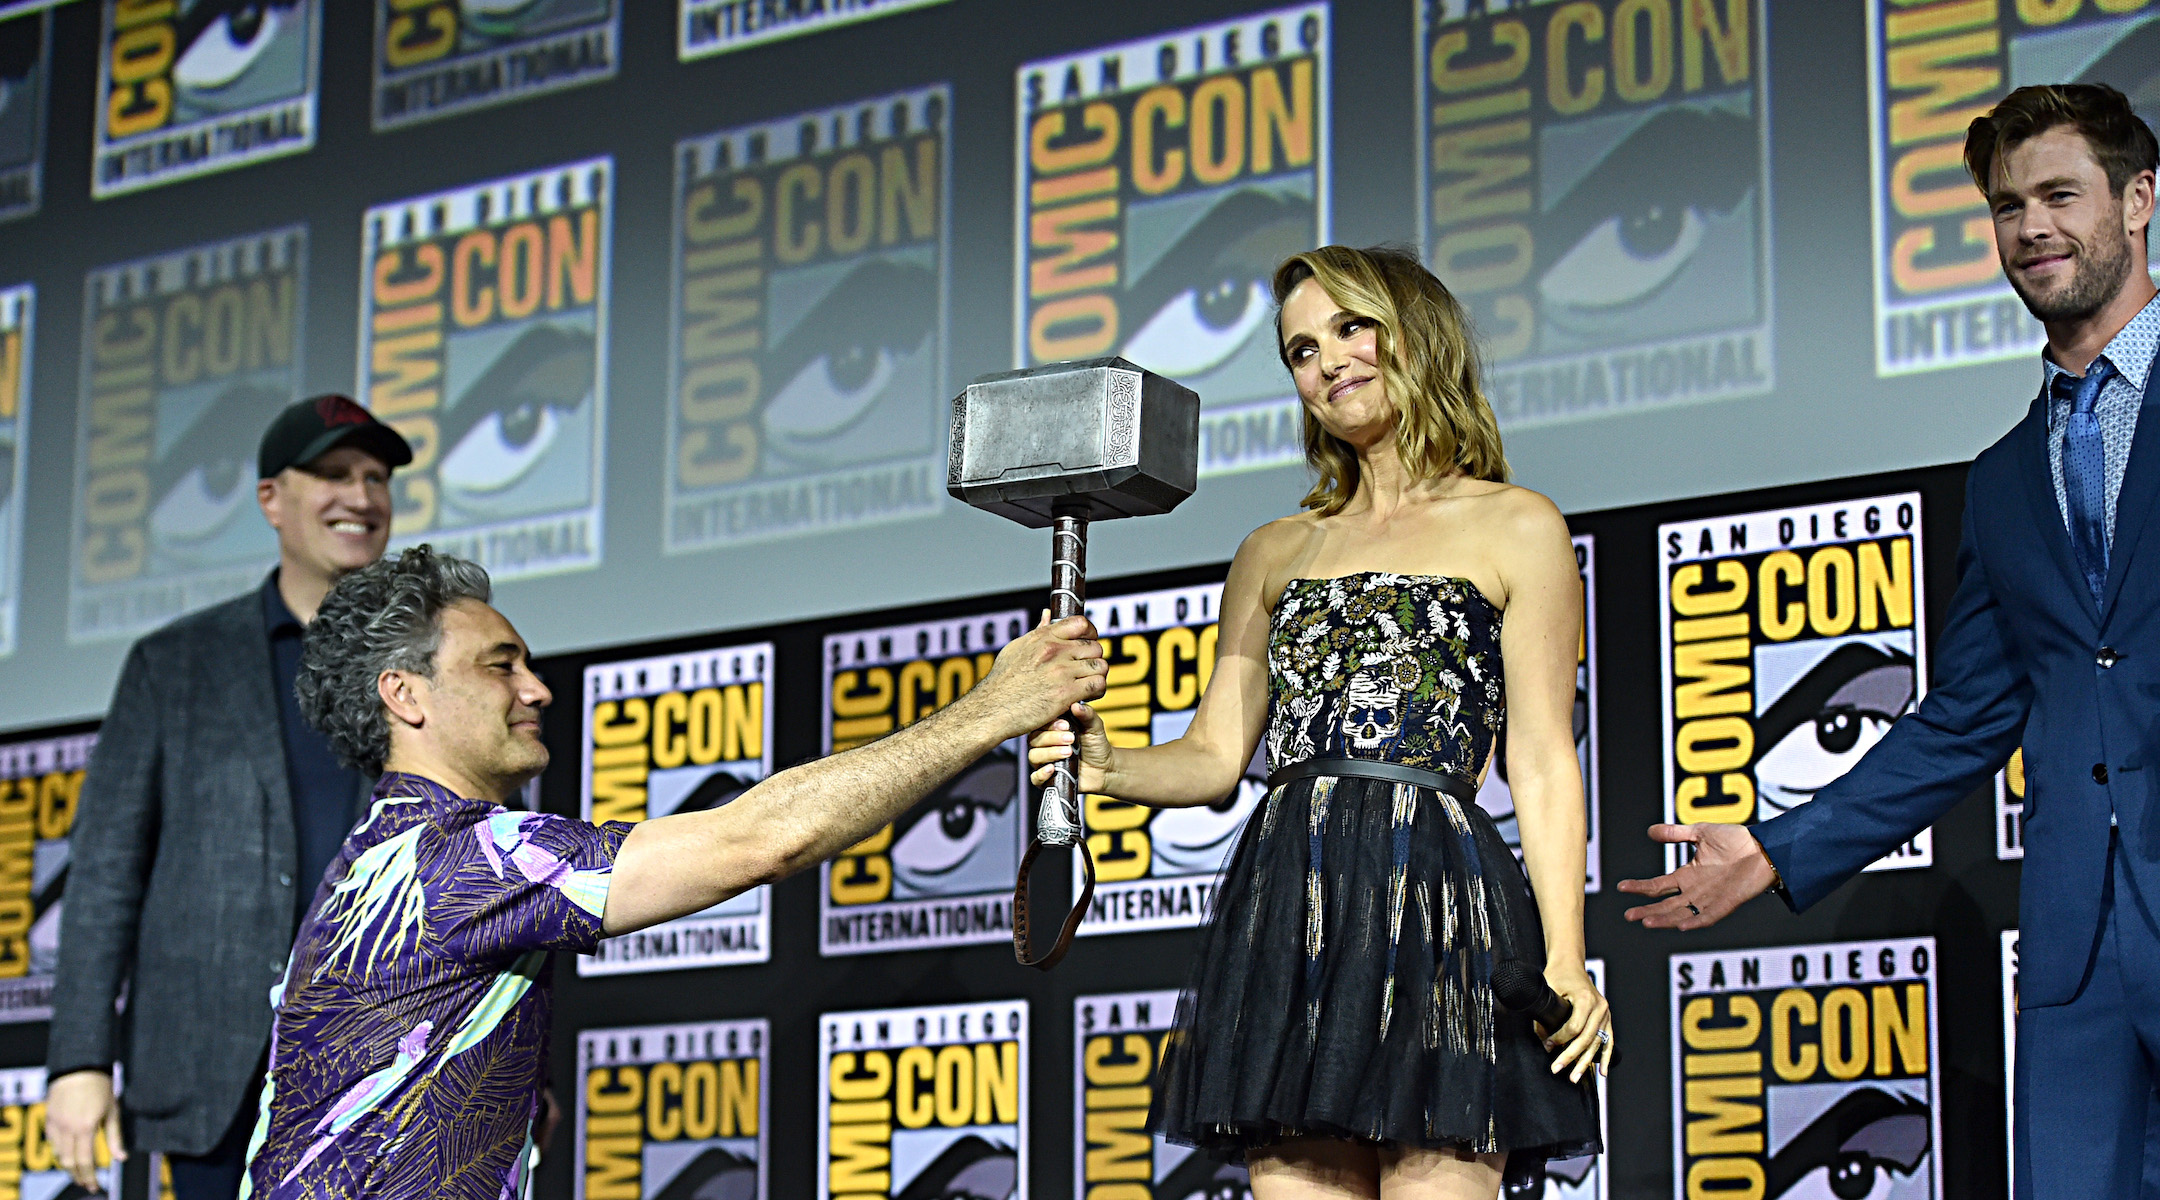 (From left) President of Marvel Studios Kevin Feige, director Taika Waititi, Natalie Portman and Chris Hemsworth at San Diego Comic-Con, July 20, 2019 (Photo/JTA-Alberto E. Rodriguez-Getty Images for Disney)